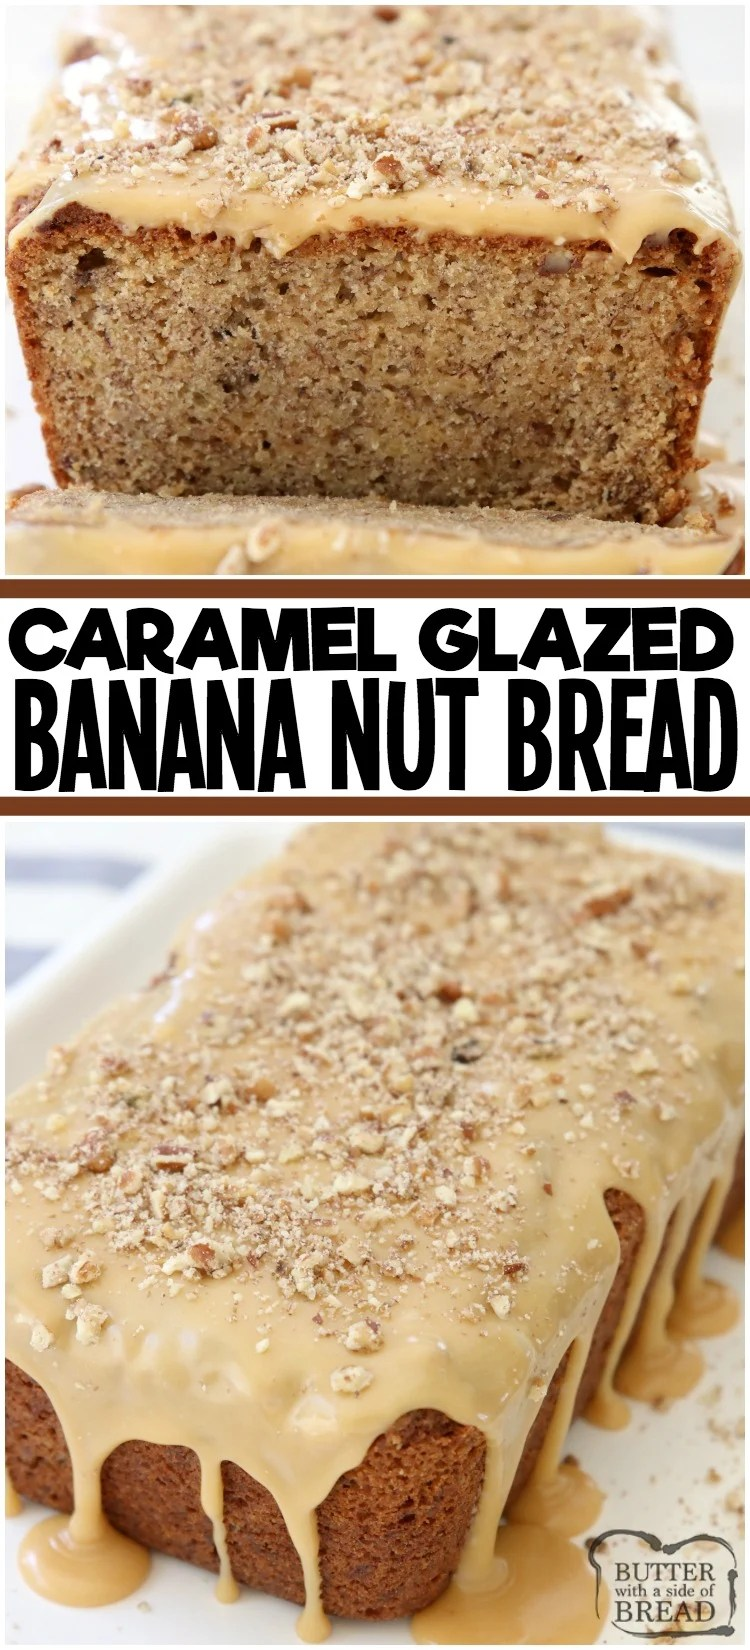 Caramel Banana Nut Bread made with ripe bananas and spiced with cinnamon, nutmeg and ginger. Topped with buttery streusel & caramel glaze. Best Banana Nut Quick Bread recipe ever!